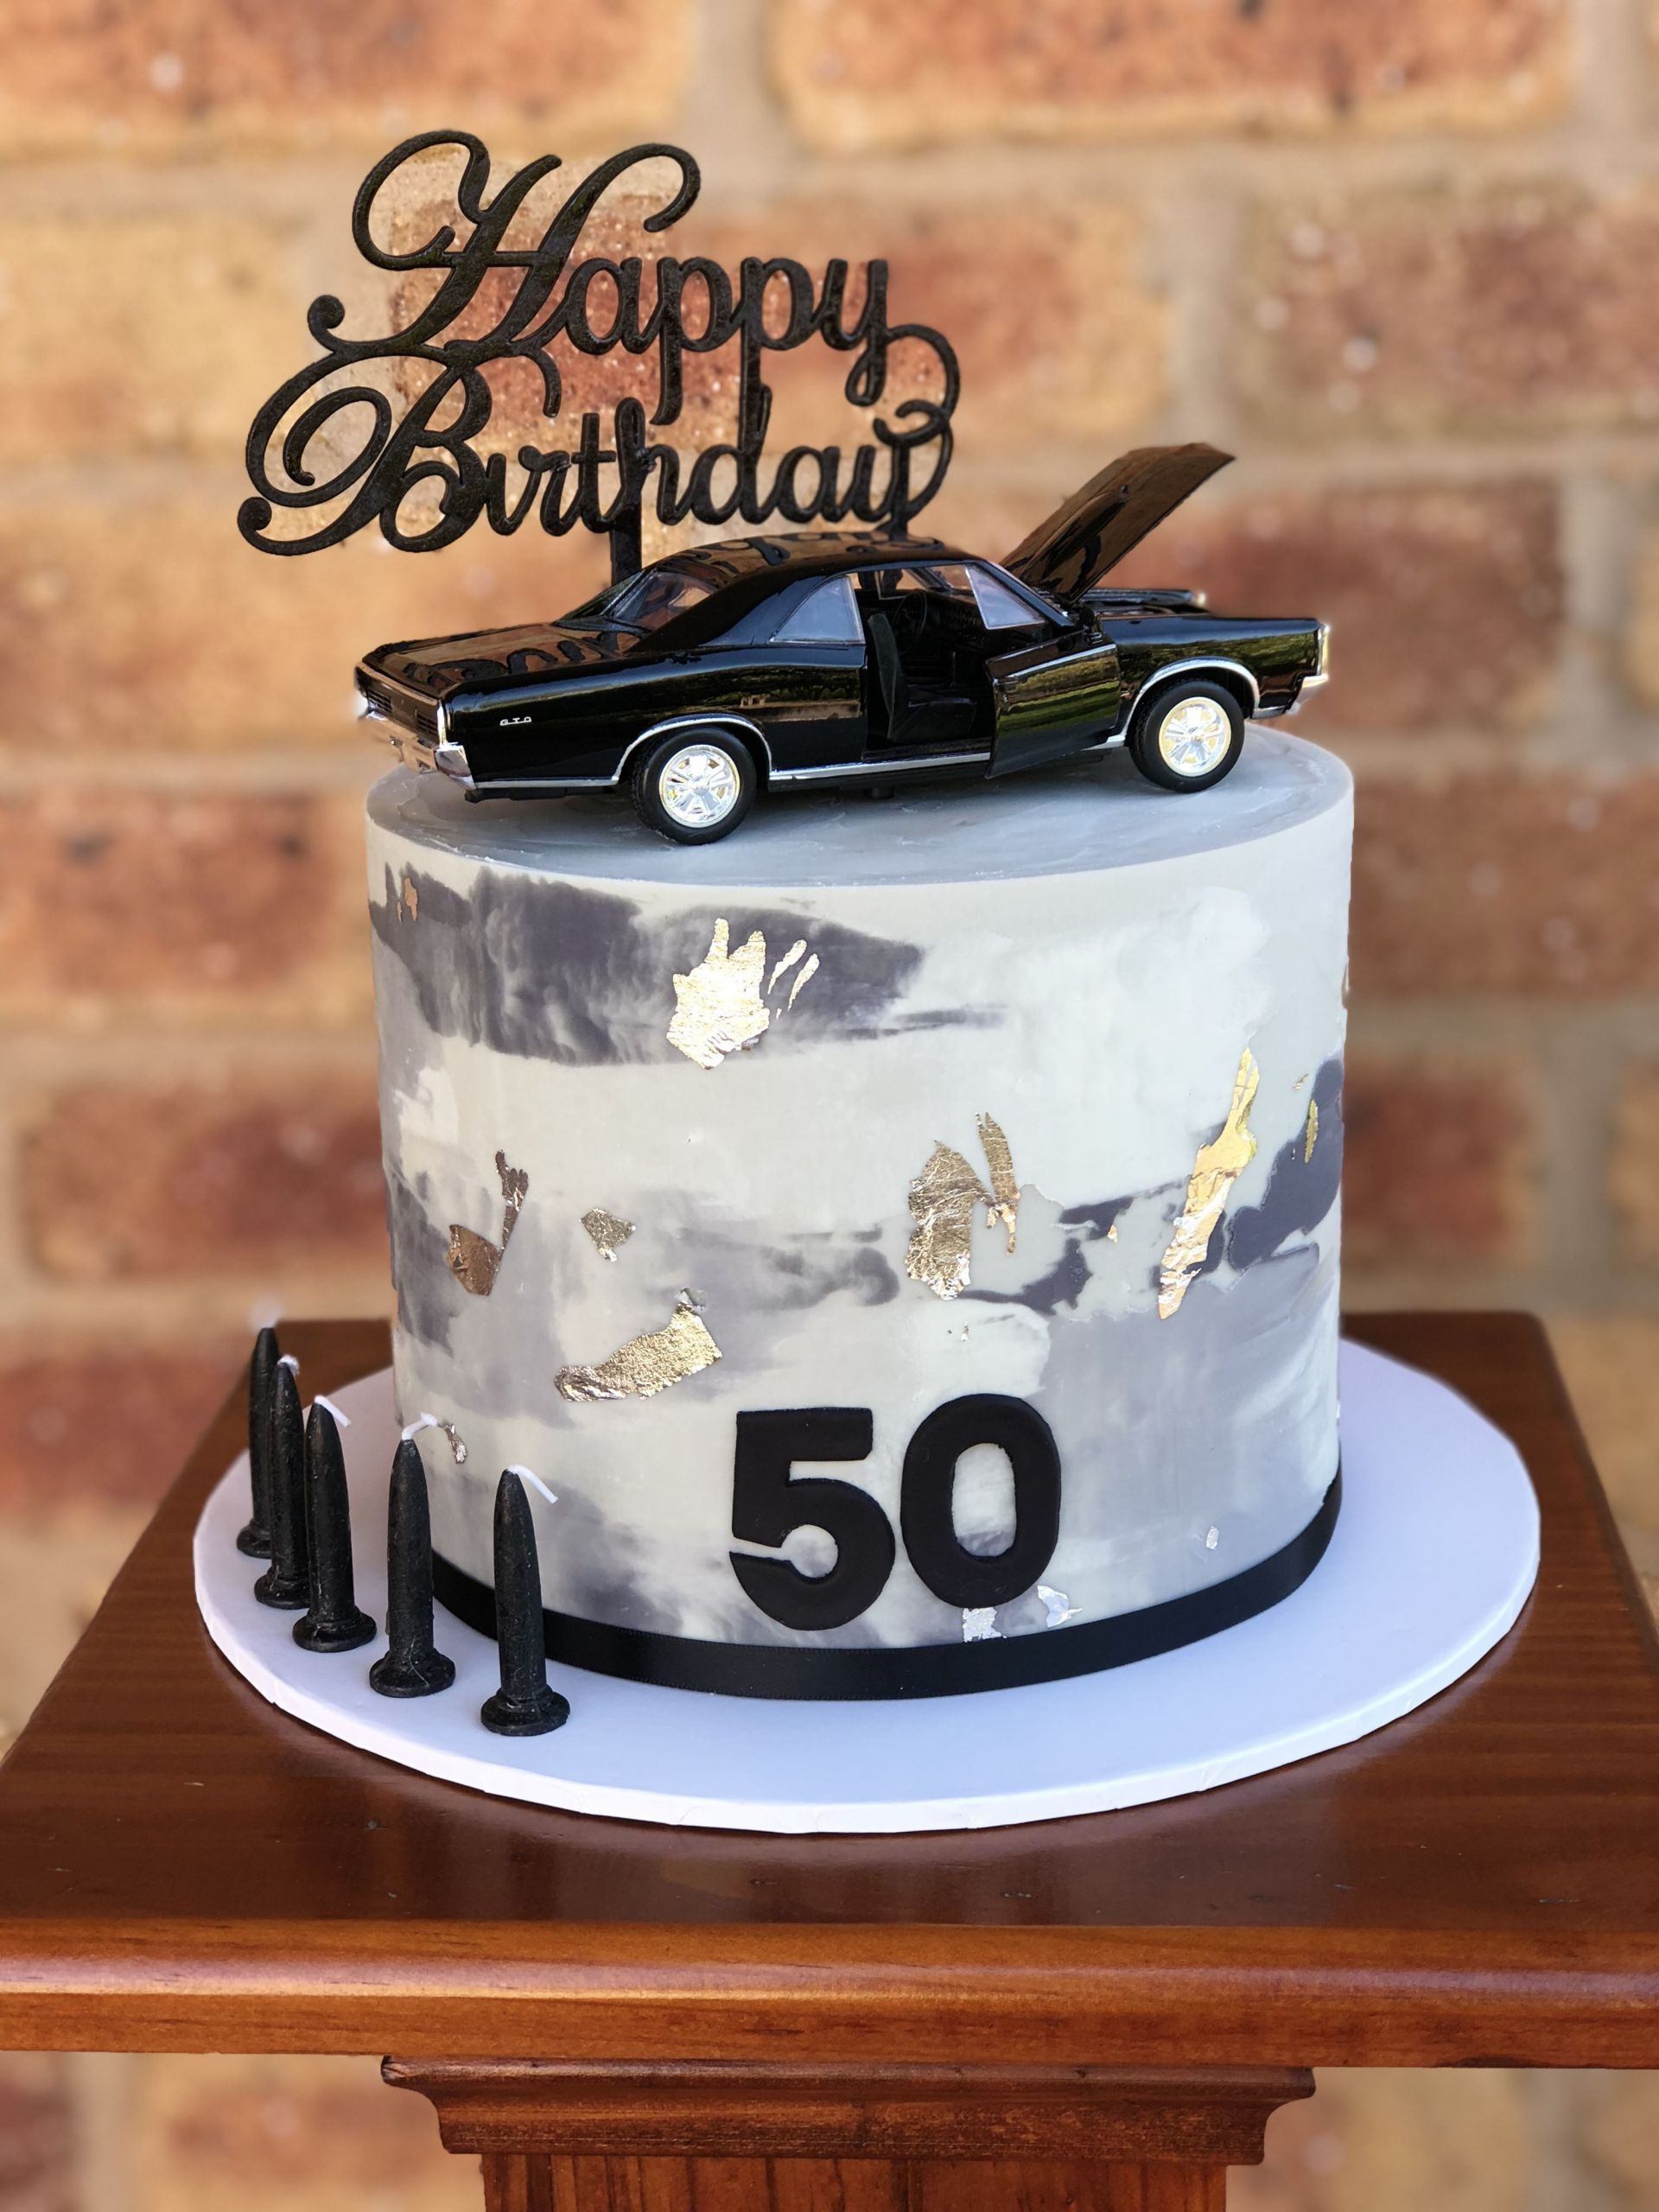 50th Birthday Cake Ideas For Him  Pin by Zeyn on DIY and crafts in 2020